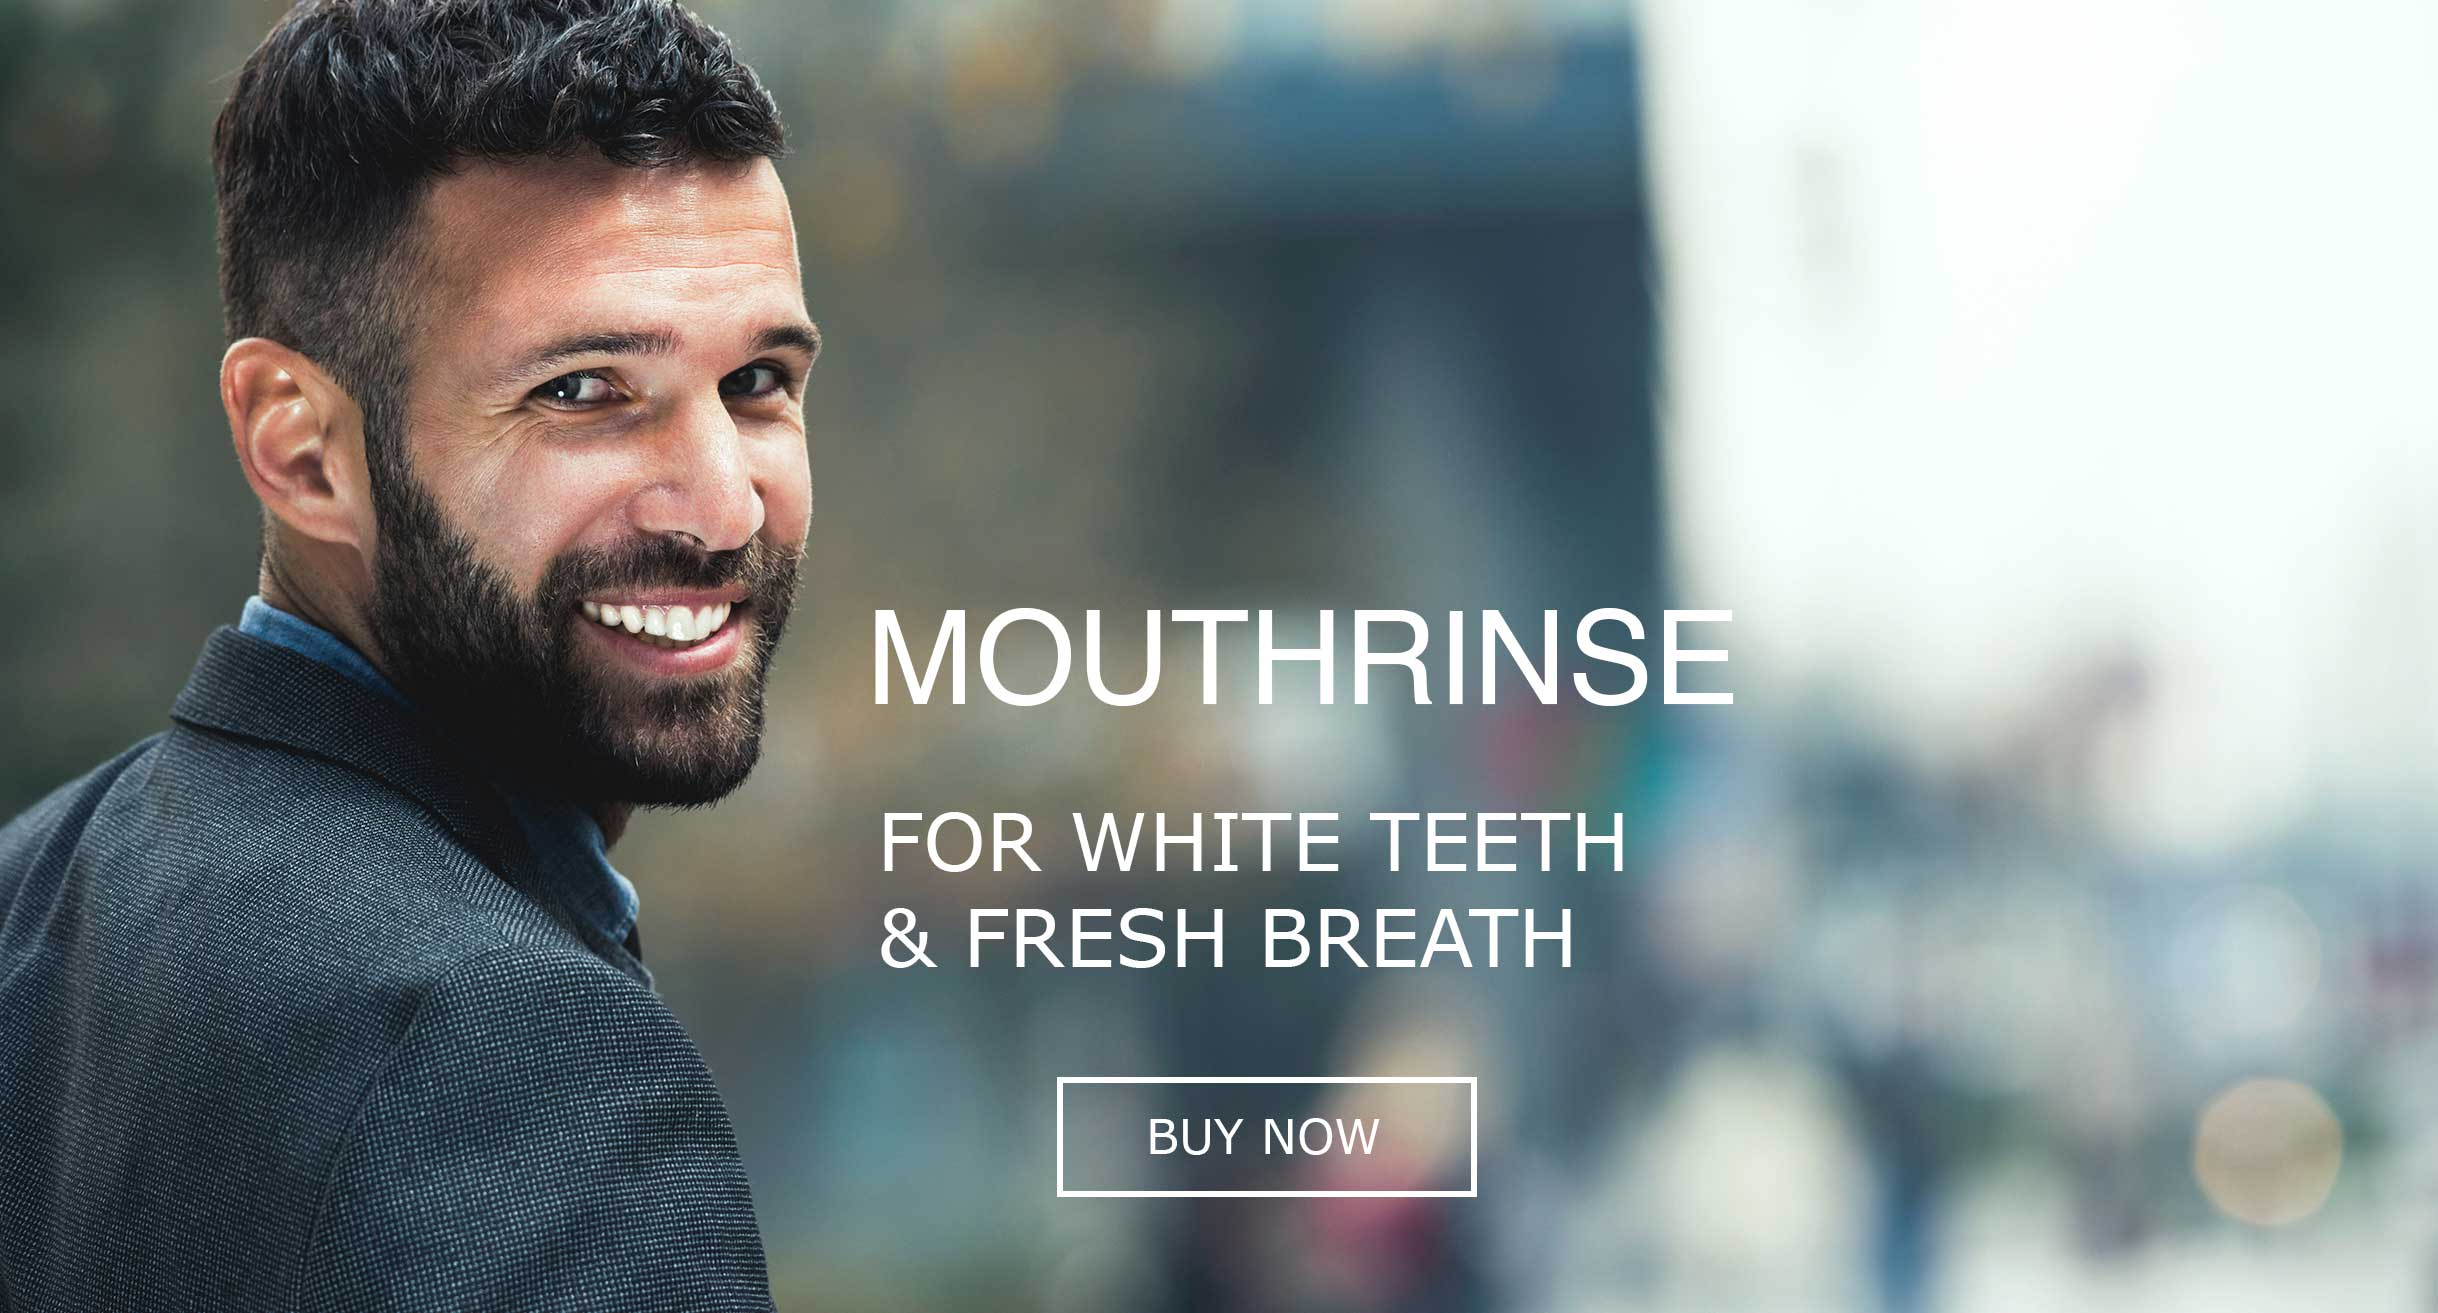 Mouthrinse for white teeth and fresh breath